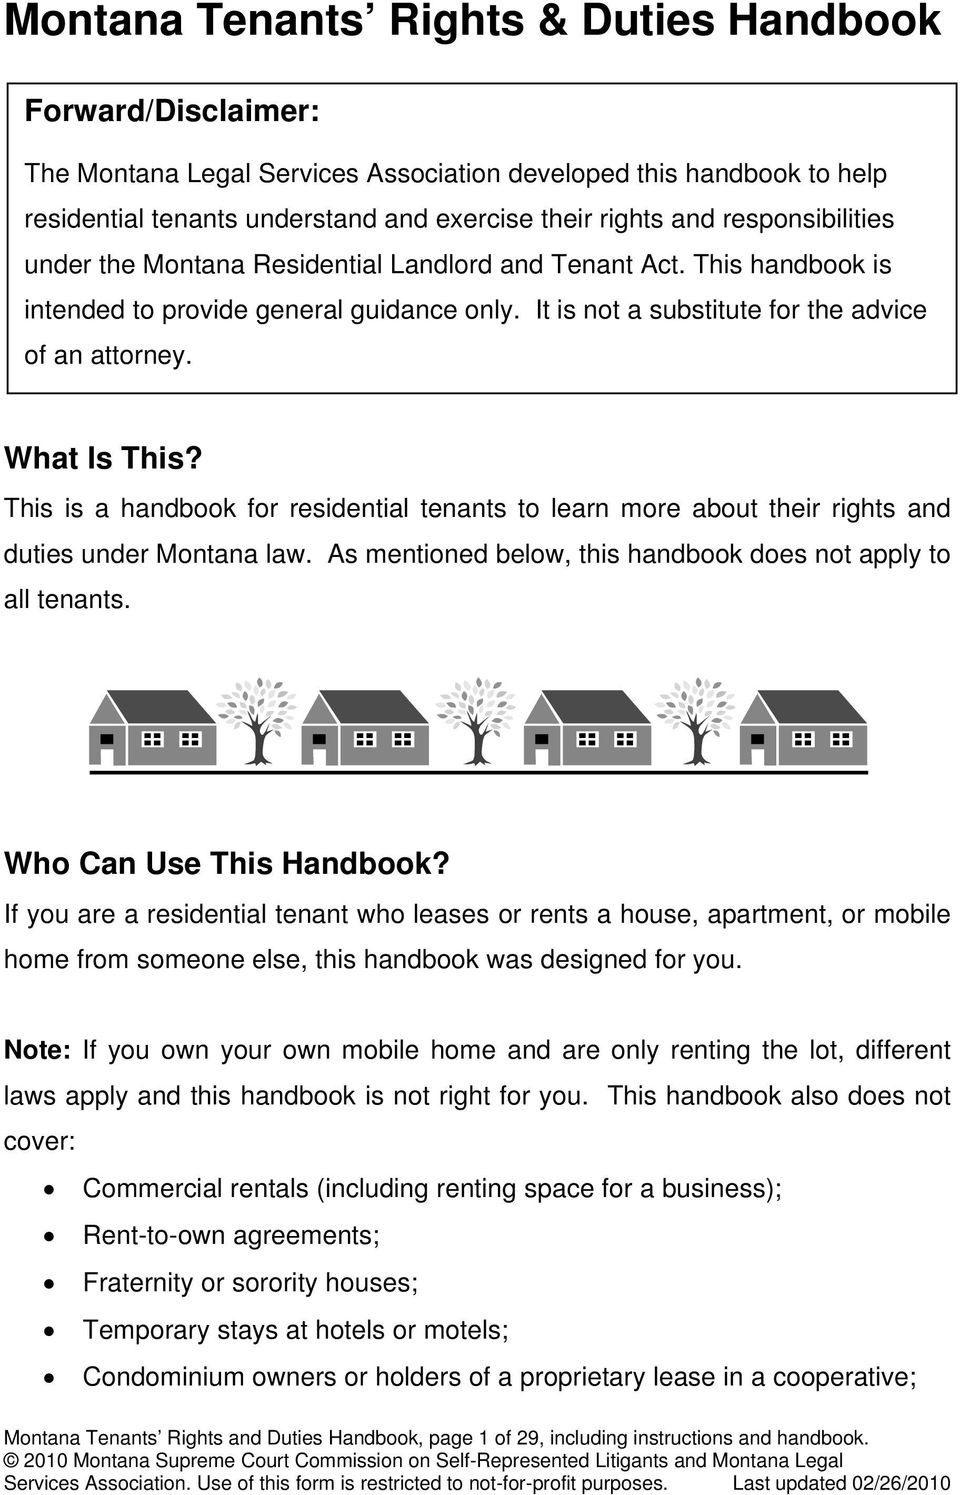 This is a handbook for residential tenants to learn more about their rights and duties under Montana law. As mentioned below, this handbook does not apply to all tenants. Who Can Use This Handbook?